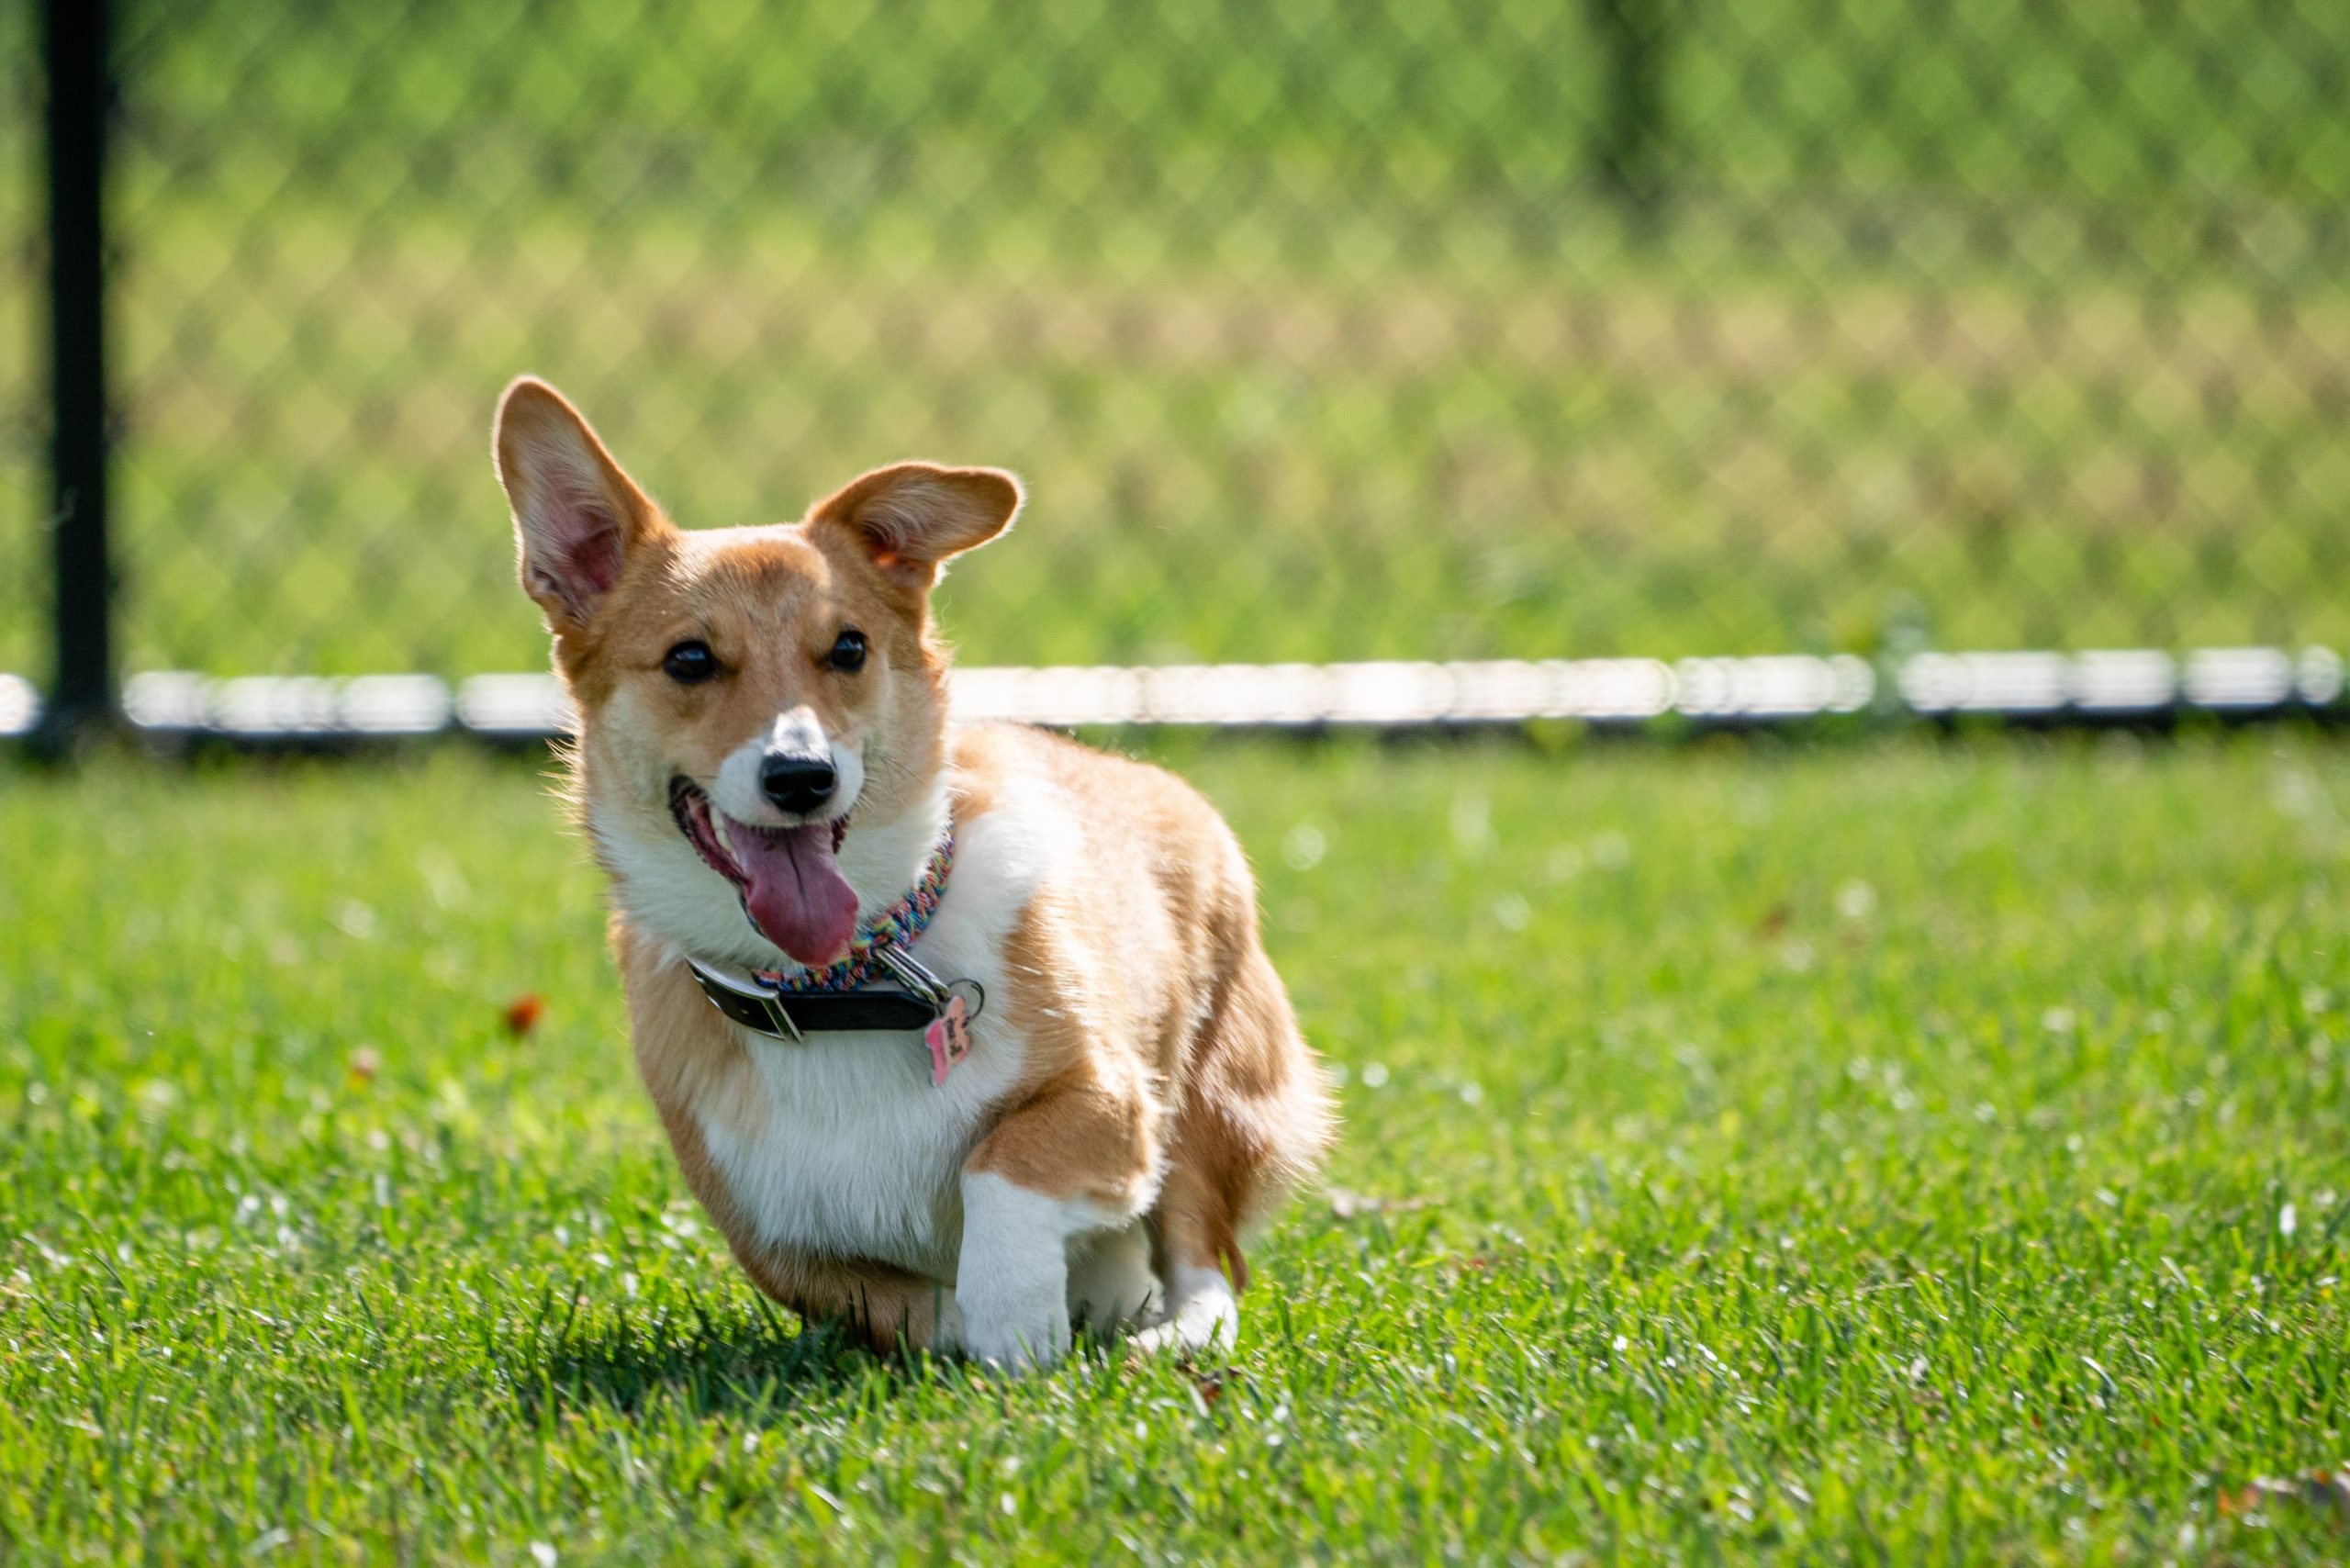 A corgi is running on the grass in a dog park. It is a sunny afternoon.